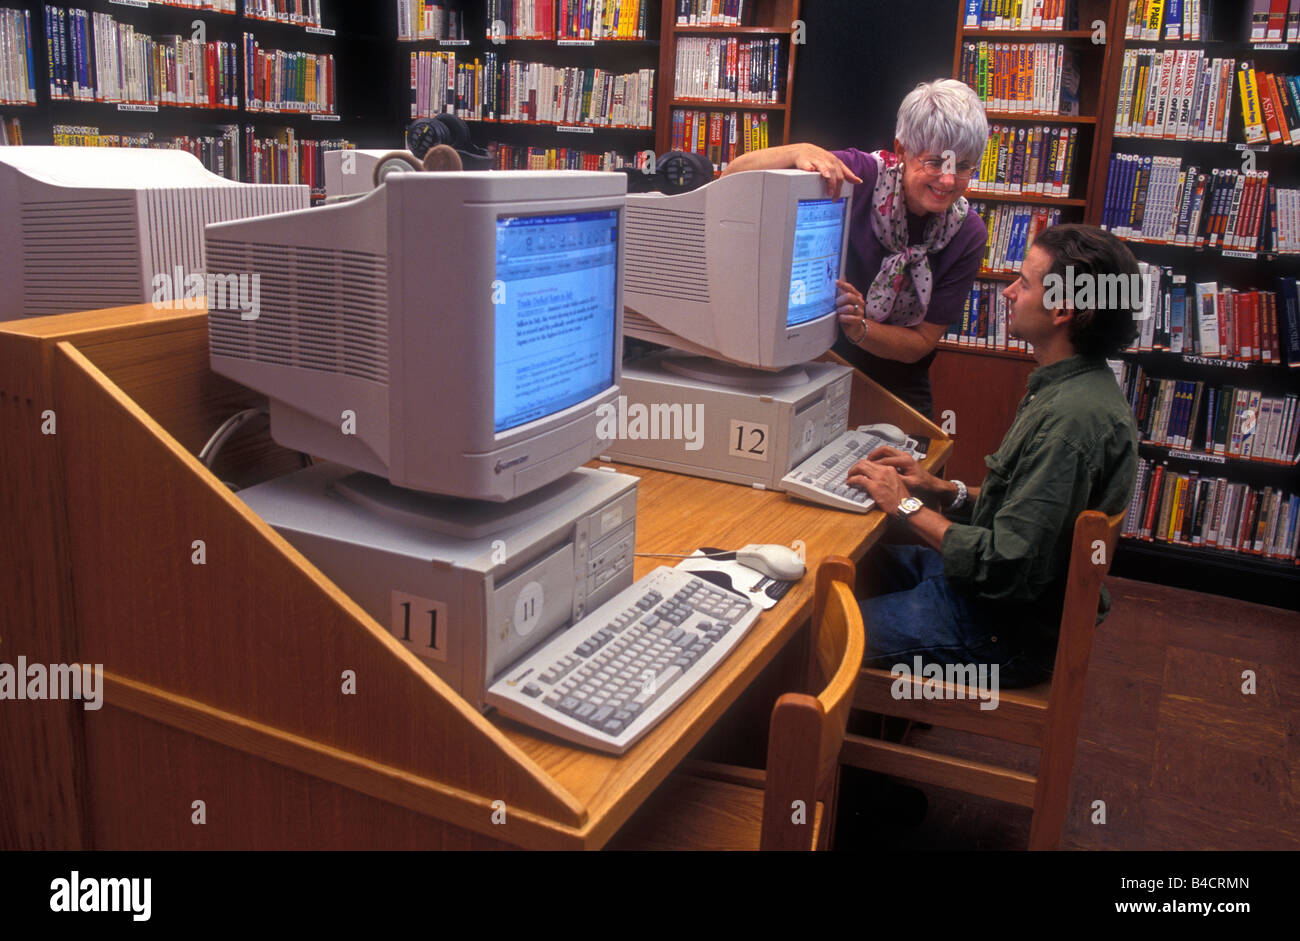 library computering - Stock Image